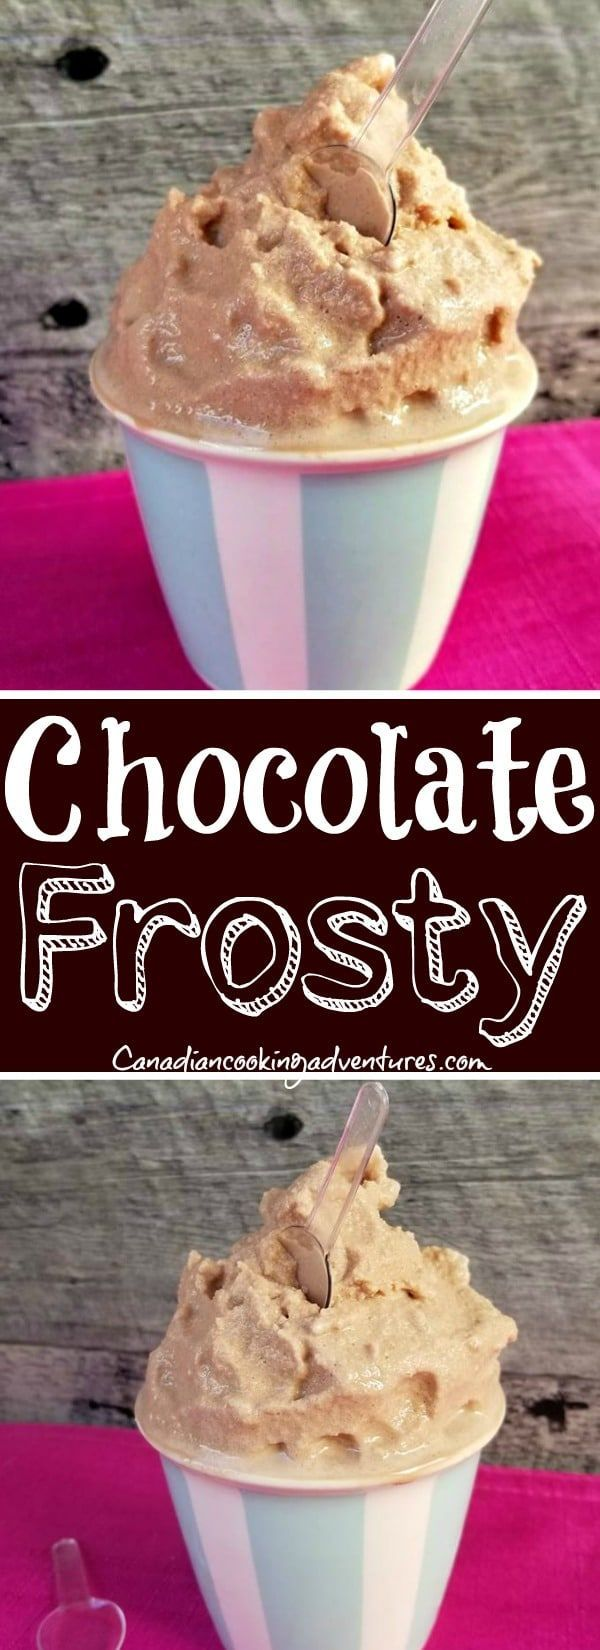 Chocolate Frosty Recipe #chocolatefrosty